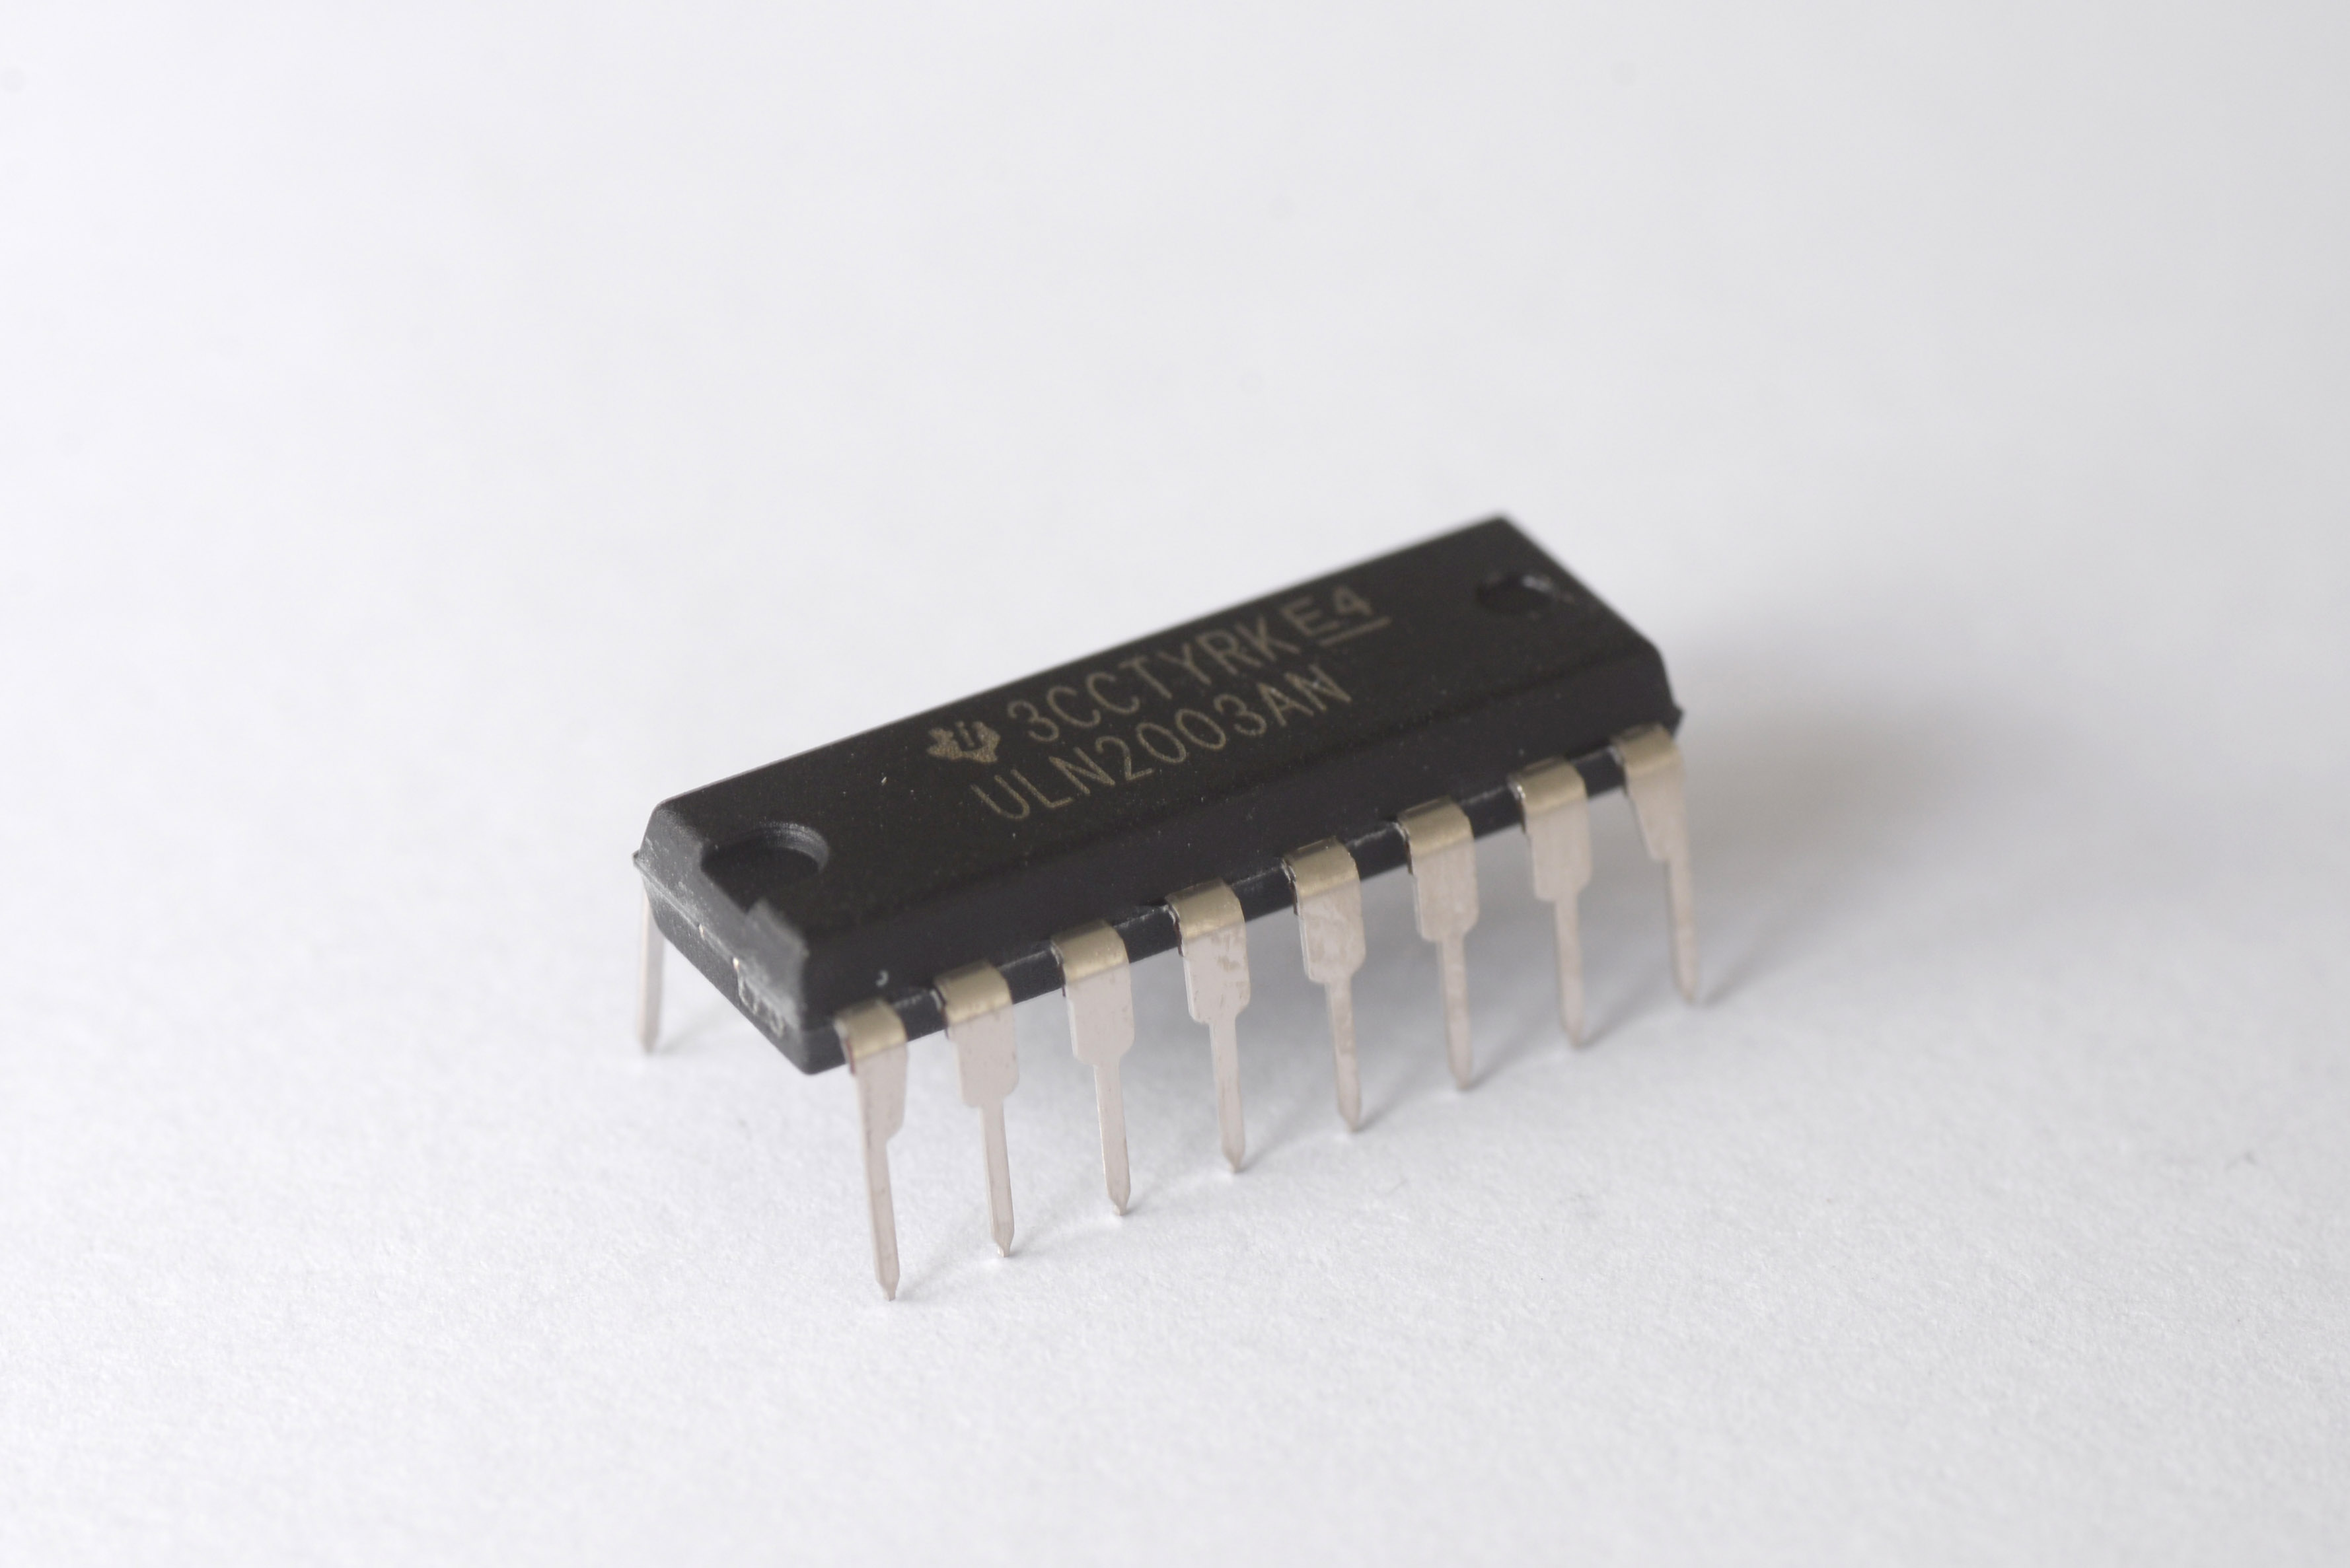 Uln2003a Phablabs 40 Electronic Circuit Jr This Integrated Ic Is A Driver For Fe Leds The Microcontroller Does Not Provide Enough Current Power Hungry